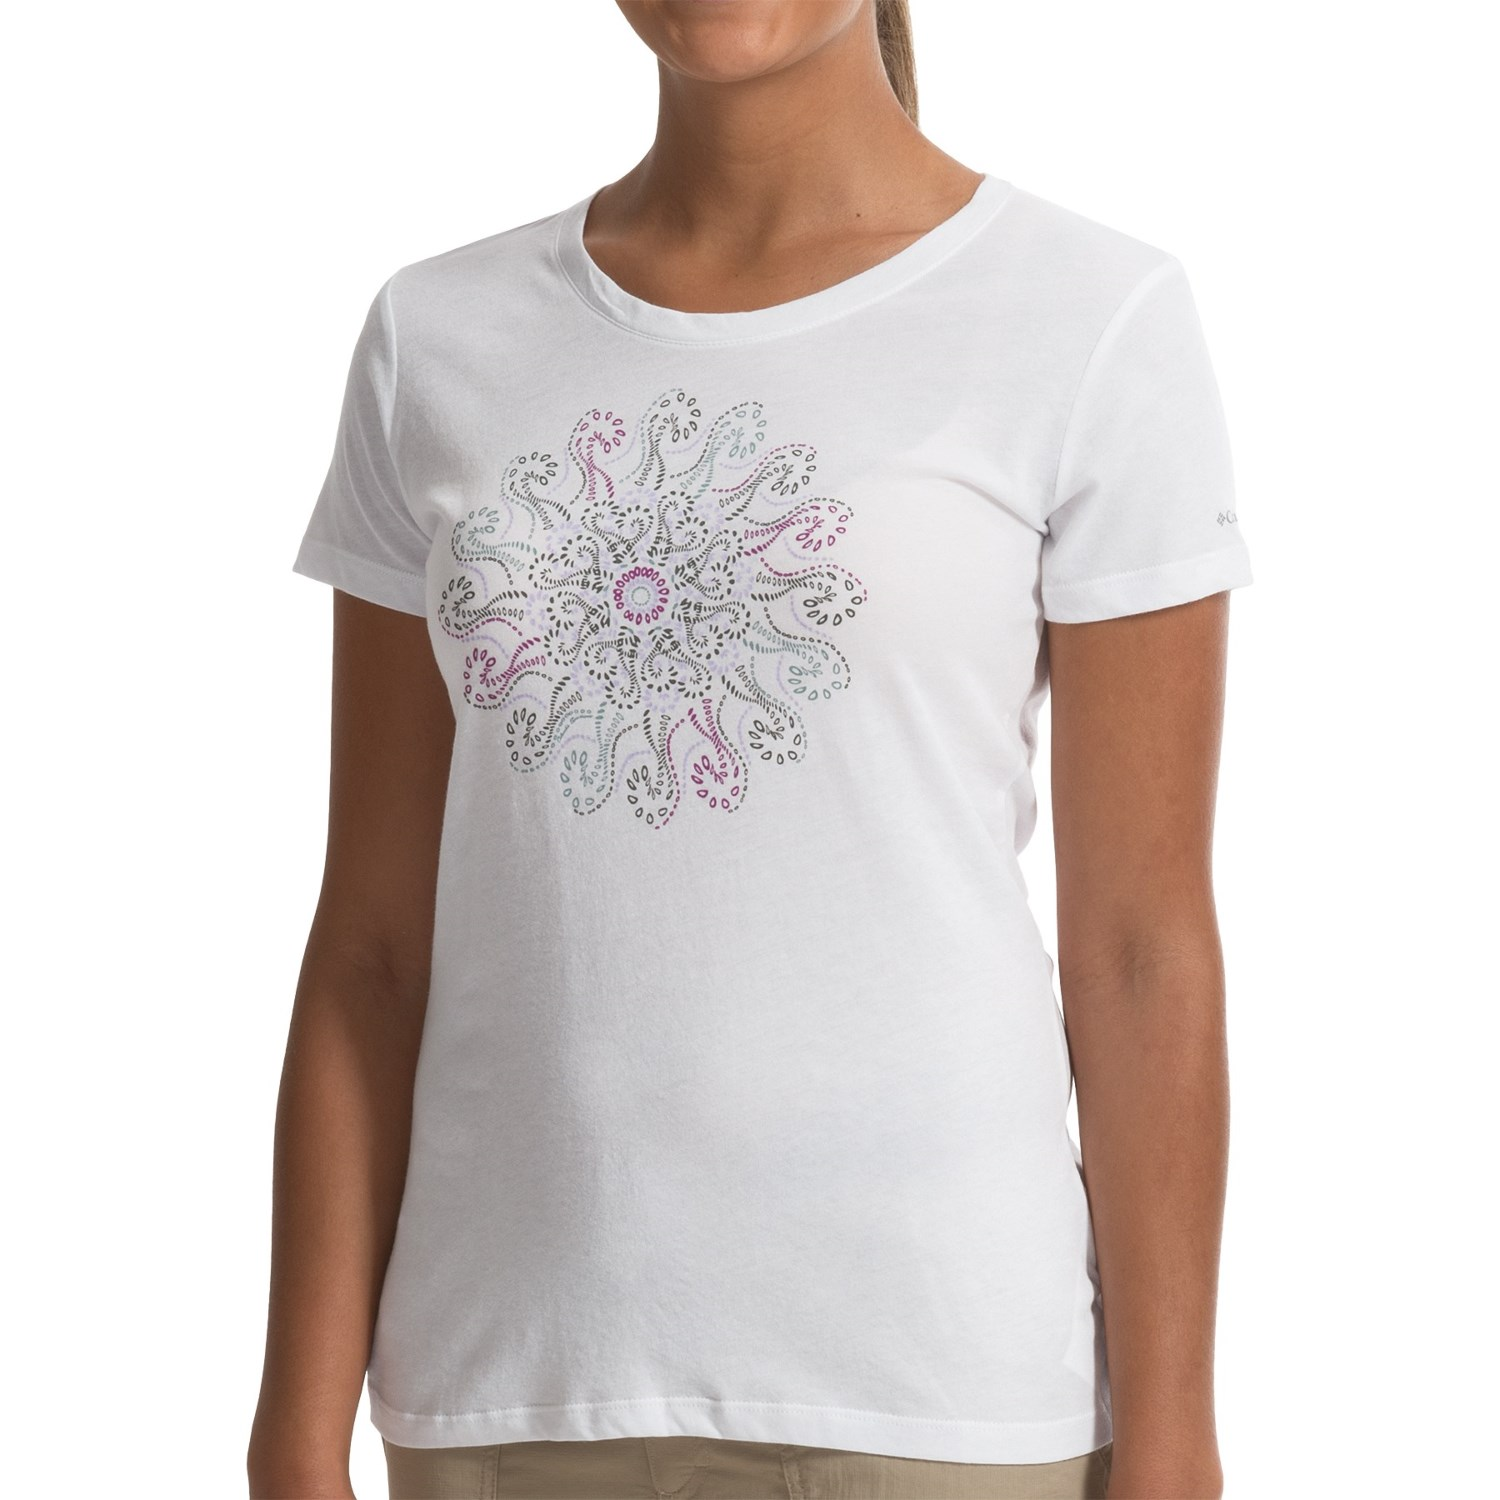 Columbia Sportswear Wickham Fancy Graphic T Shirt For